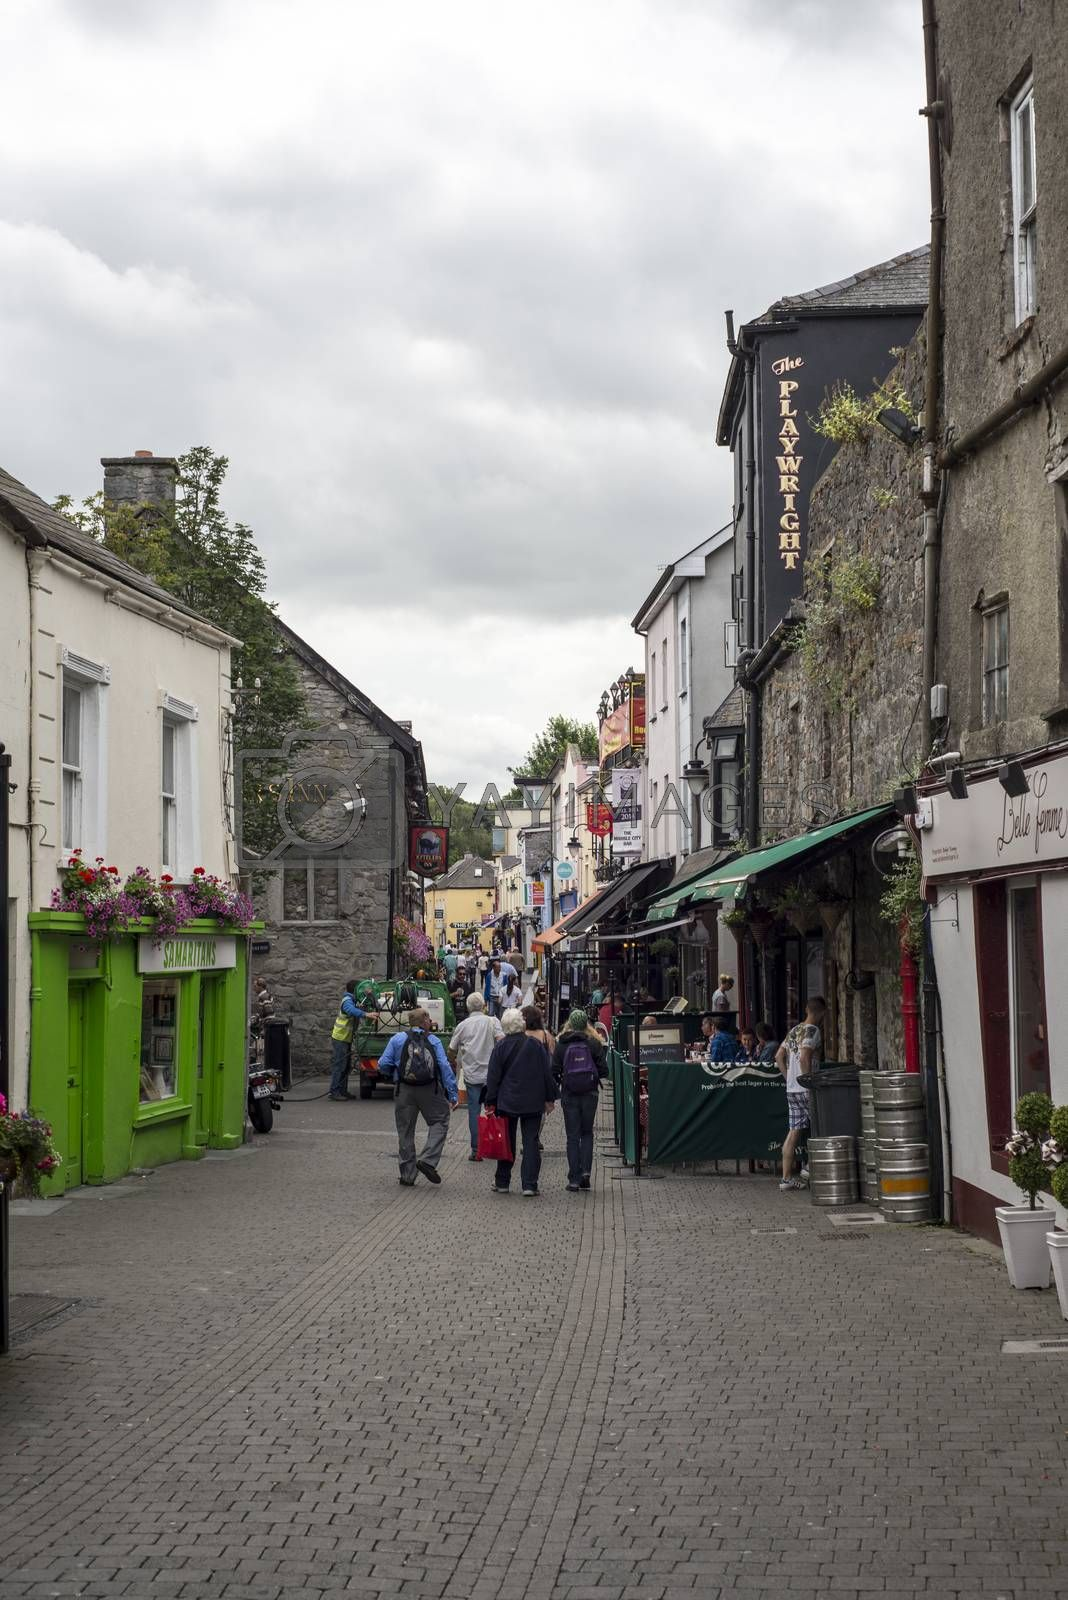 beautiful side street scene in kilkenny city ireland